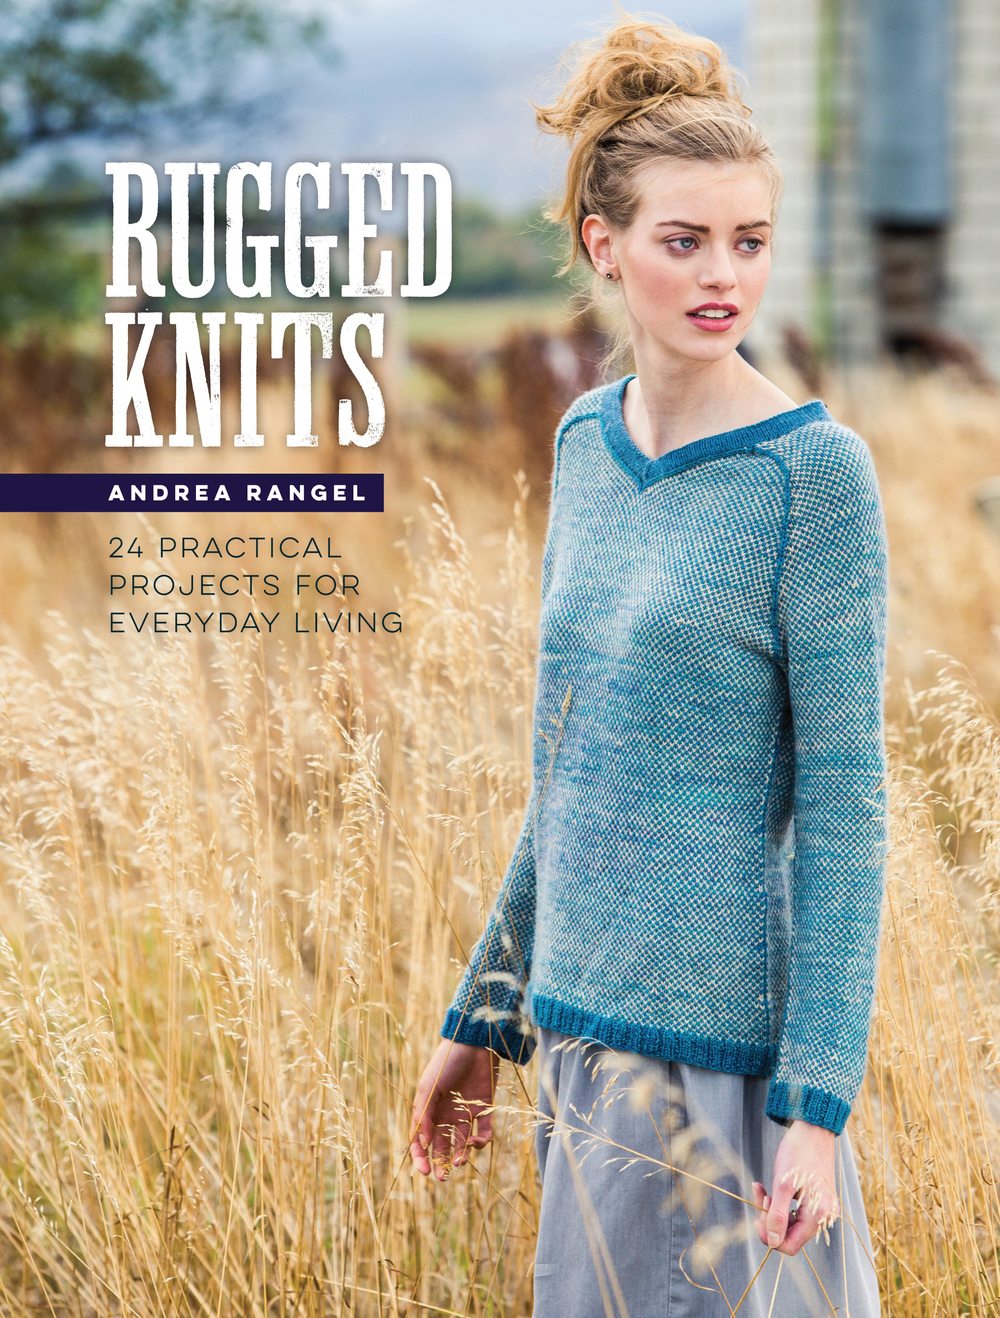 Rugged Knits by Andrea Rangel #sskal16